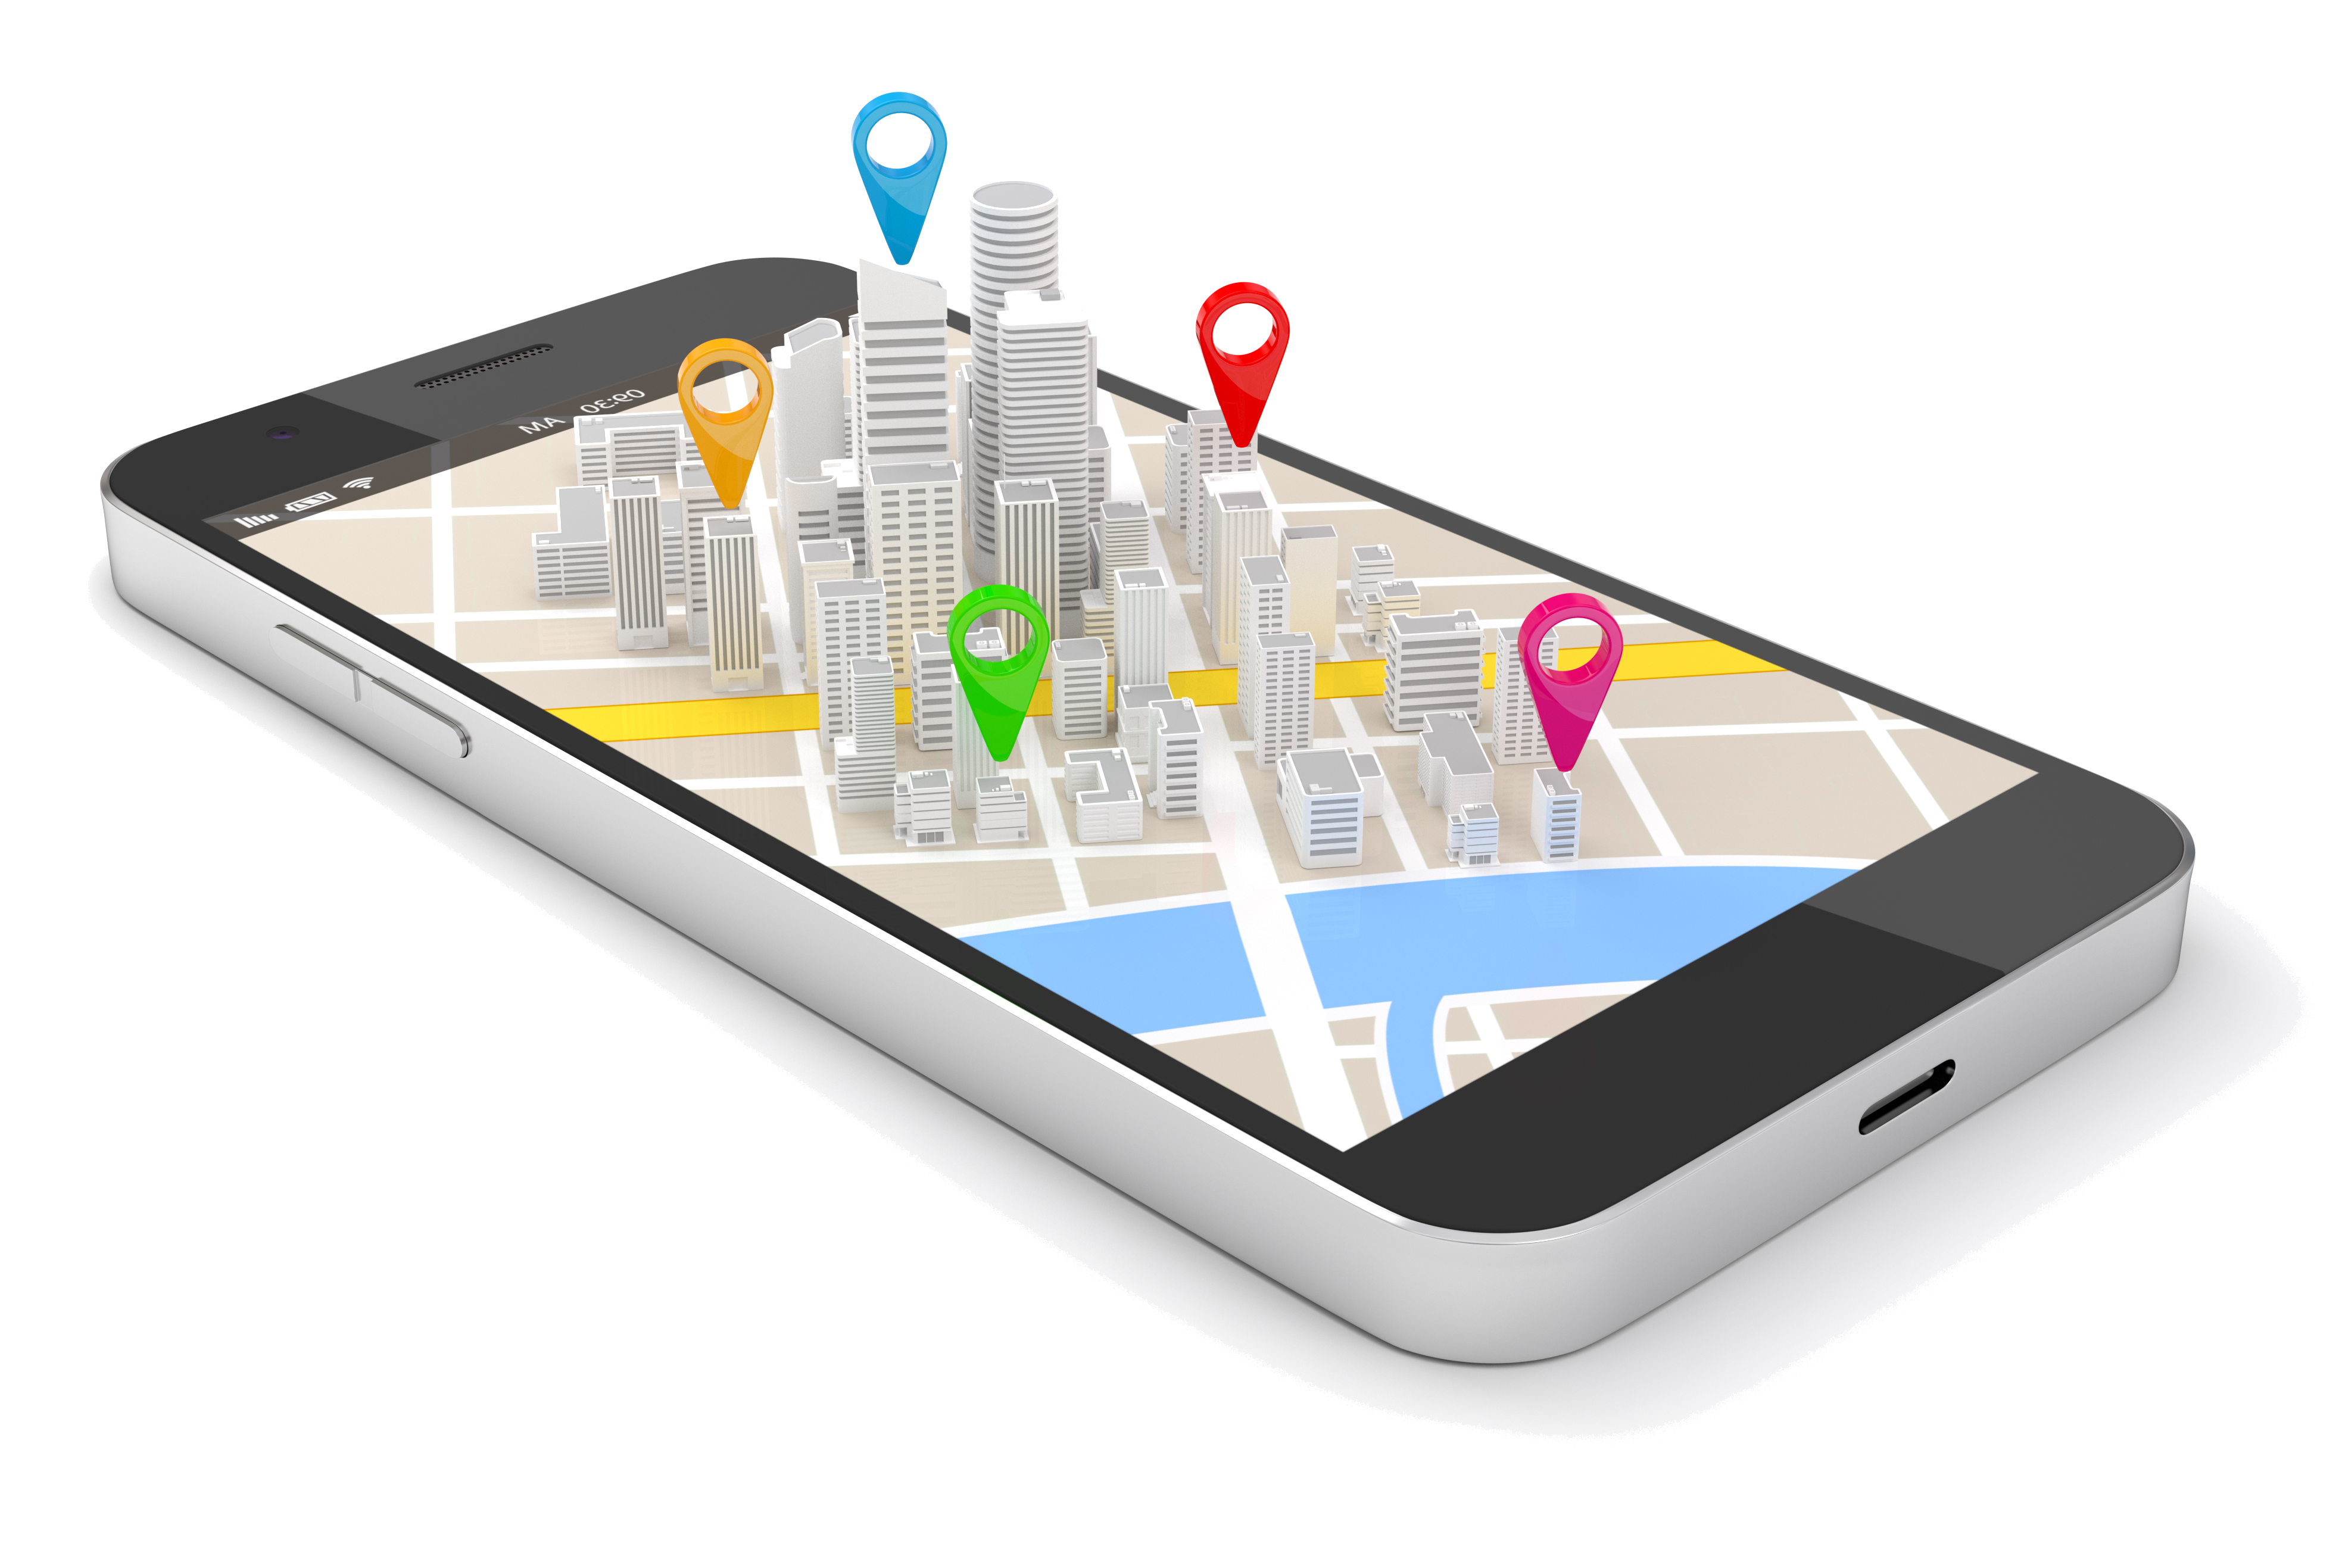 Quick Attendance App using Geolocation